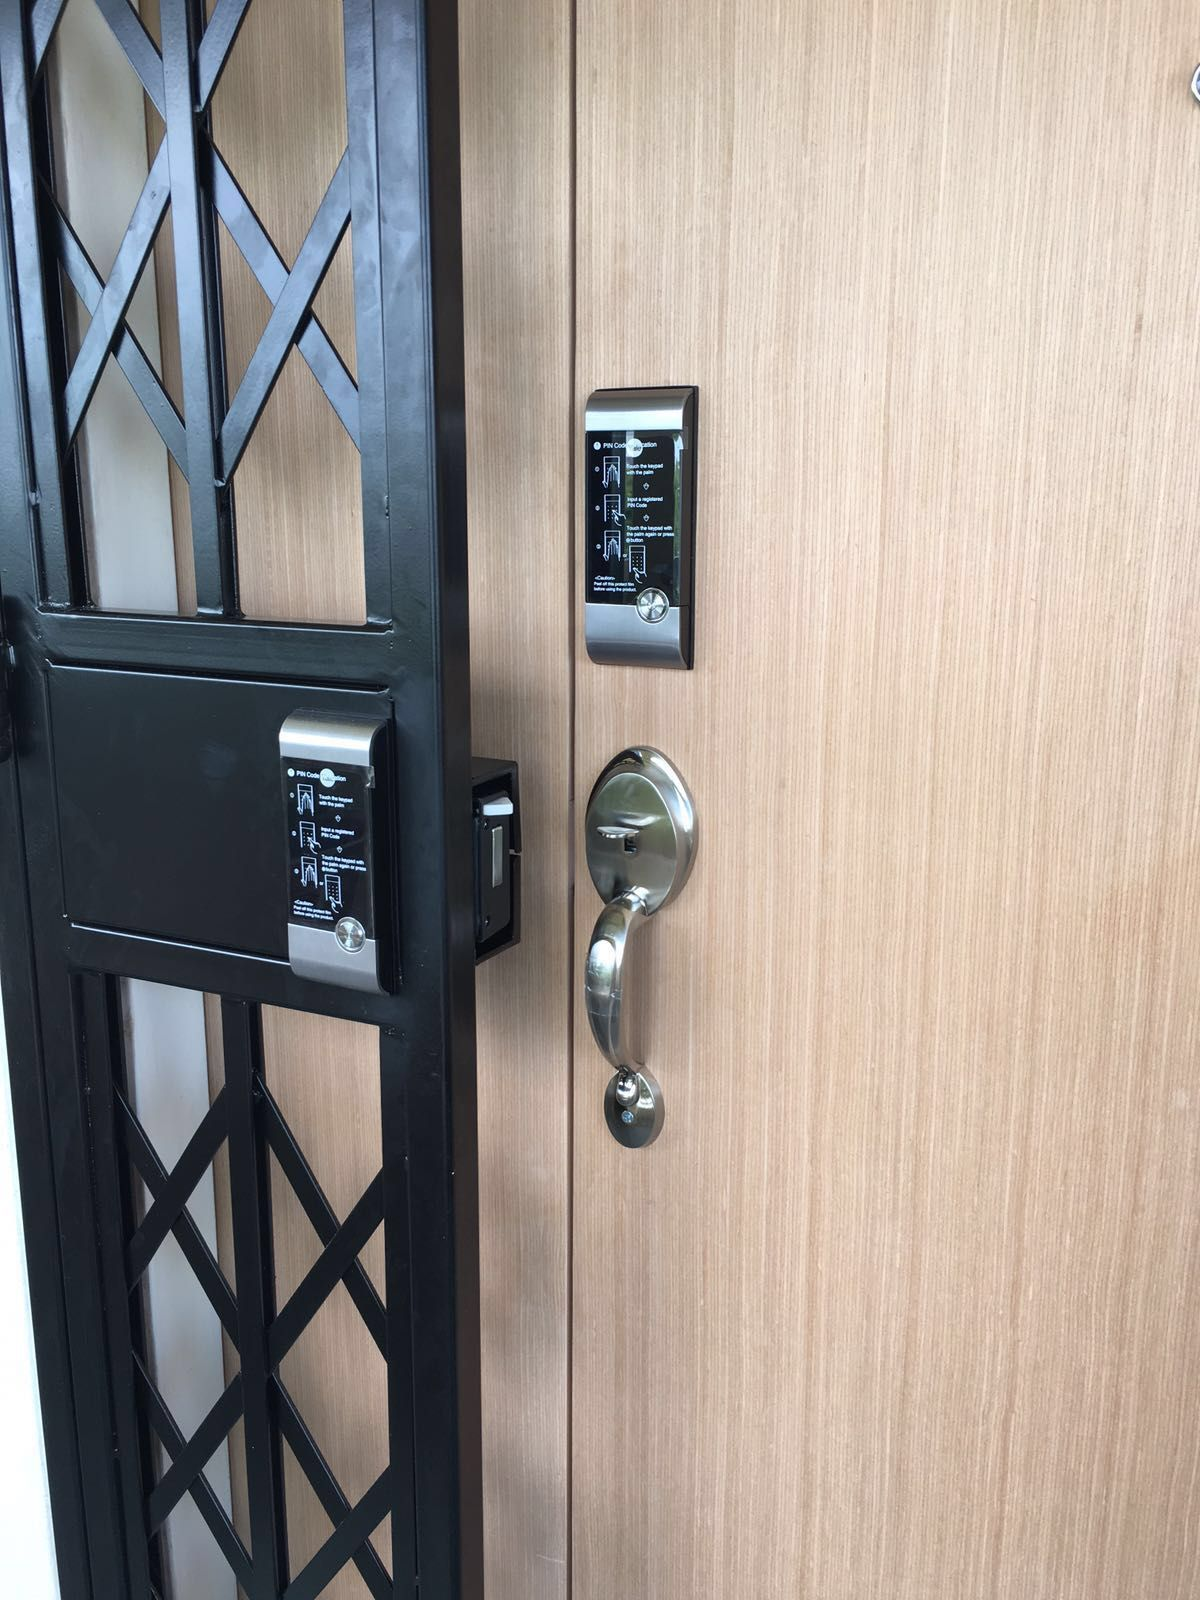 Yale ydr 3110 digital door lock promotion install on hdb - Installing a lock on a bedroom door ...